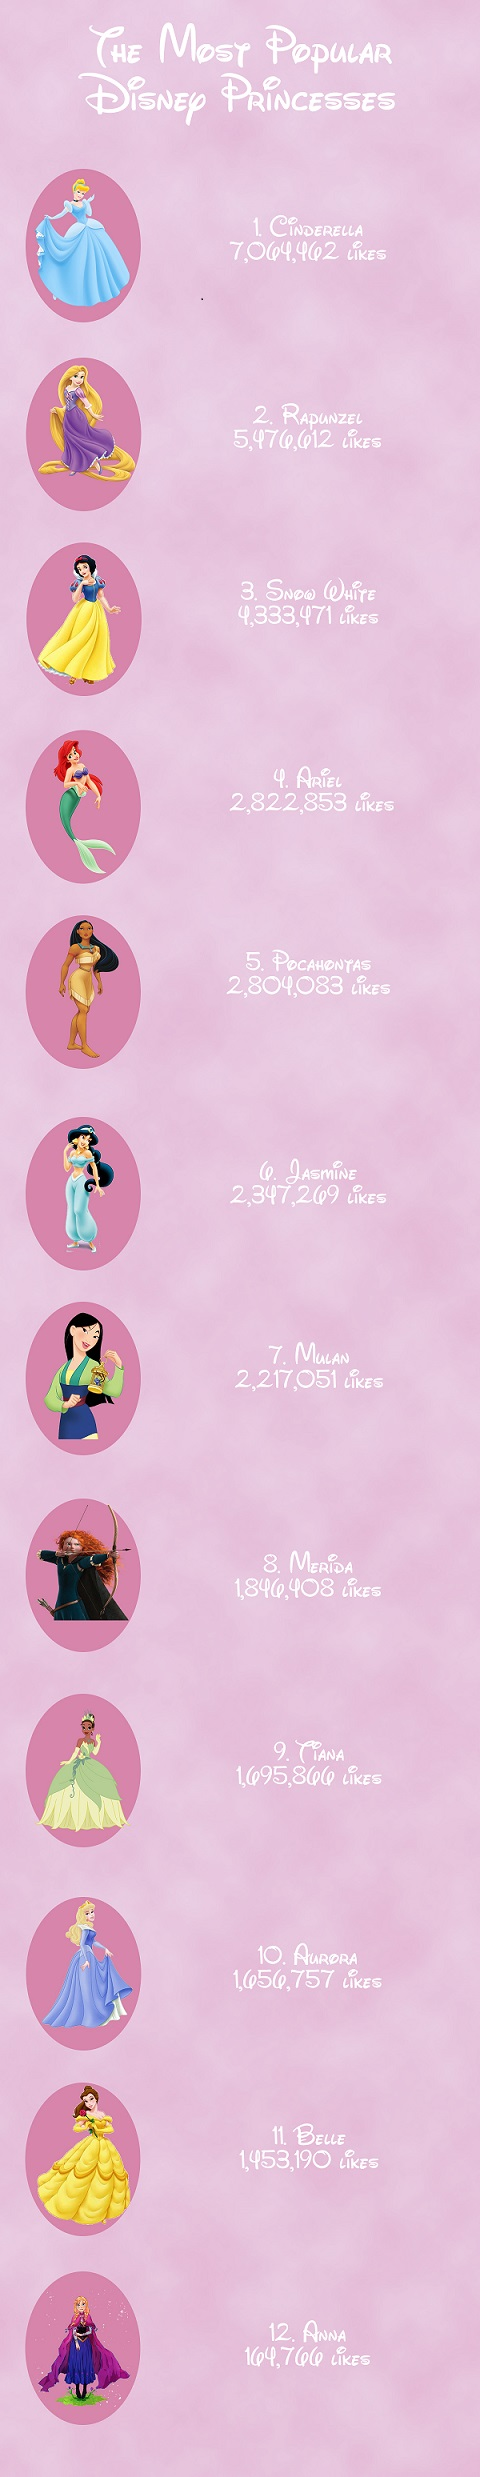 Most Popular Disney Princesses on Facebook